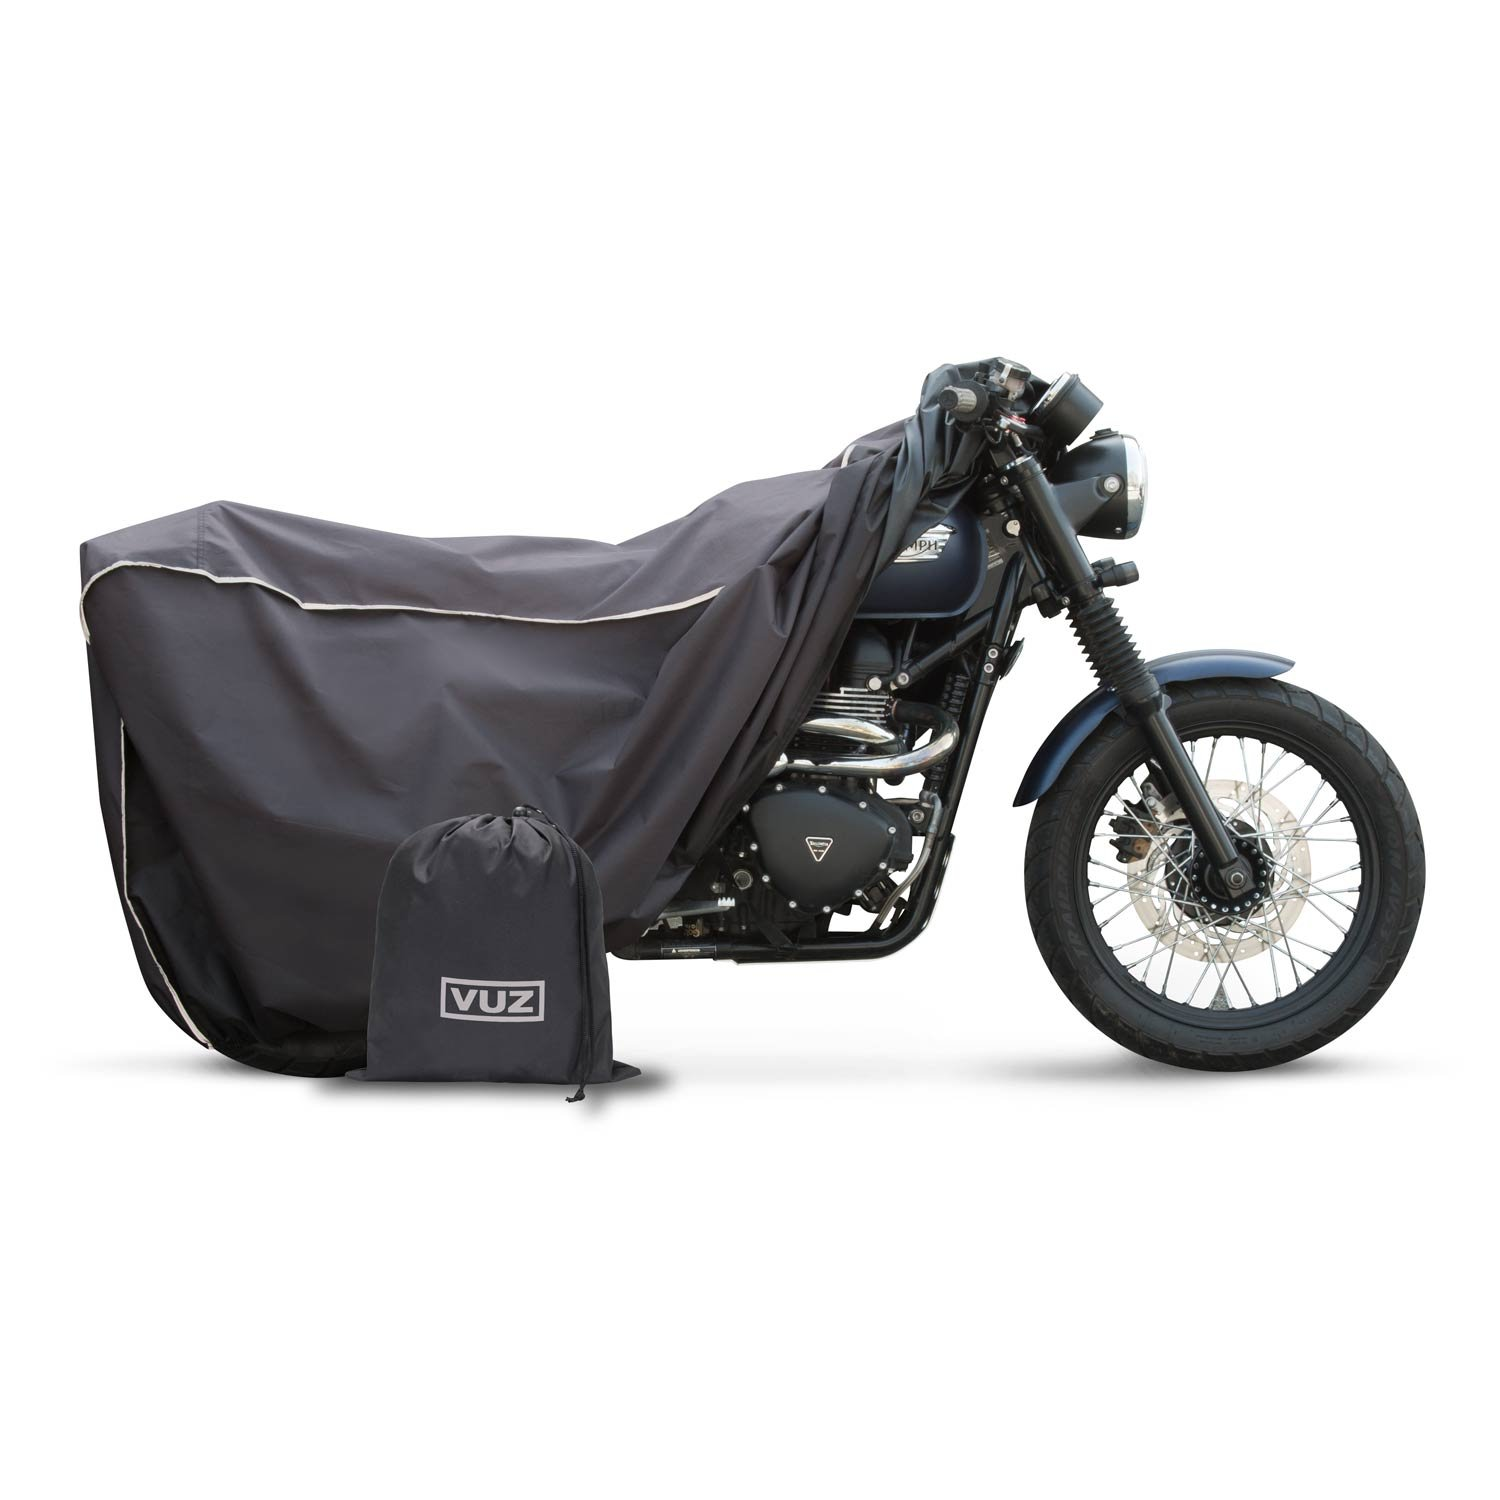 VUZ Moto Waterproof Motorcycle Covers | Premium Heavy Duty Polyester | All Weather Conditions for Adventure, Cruisers, and Classic Bikes | Medium, Black